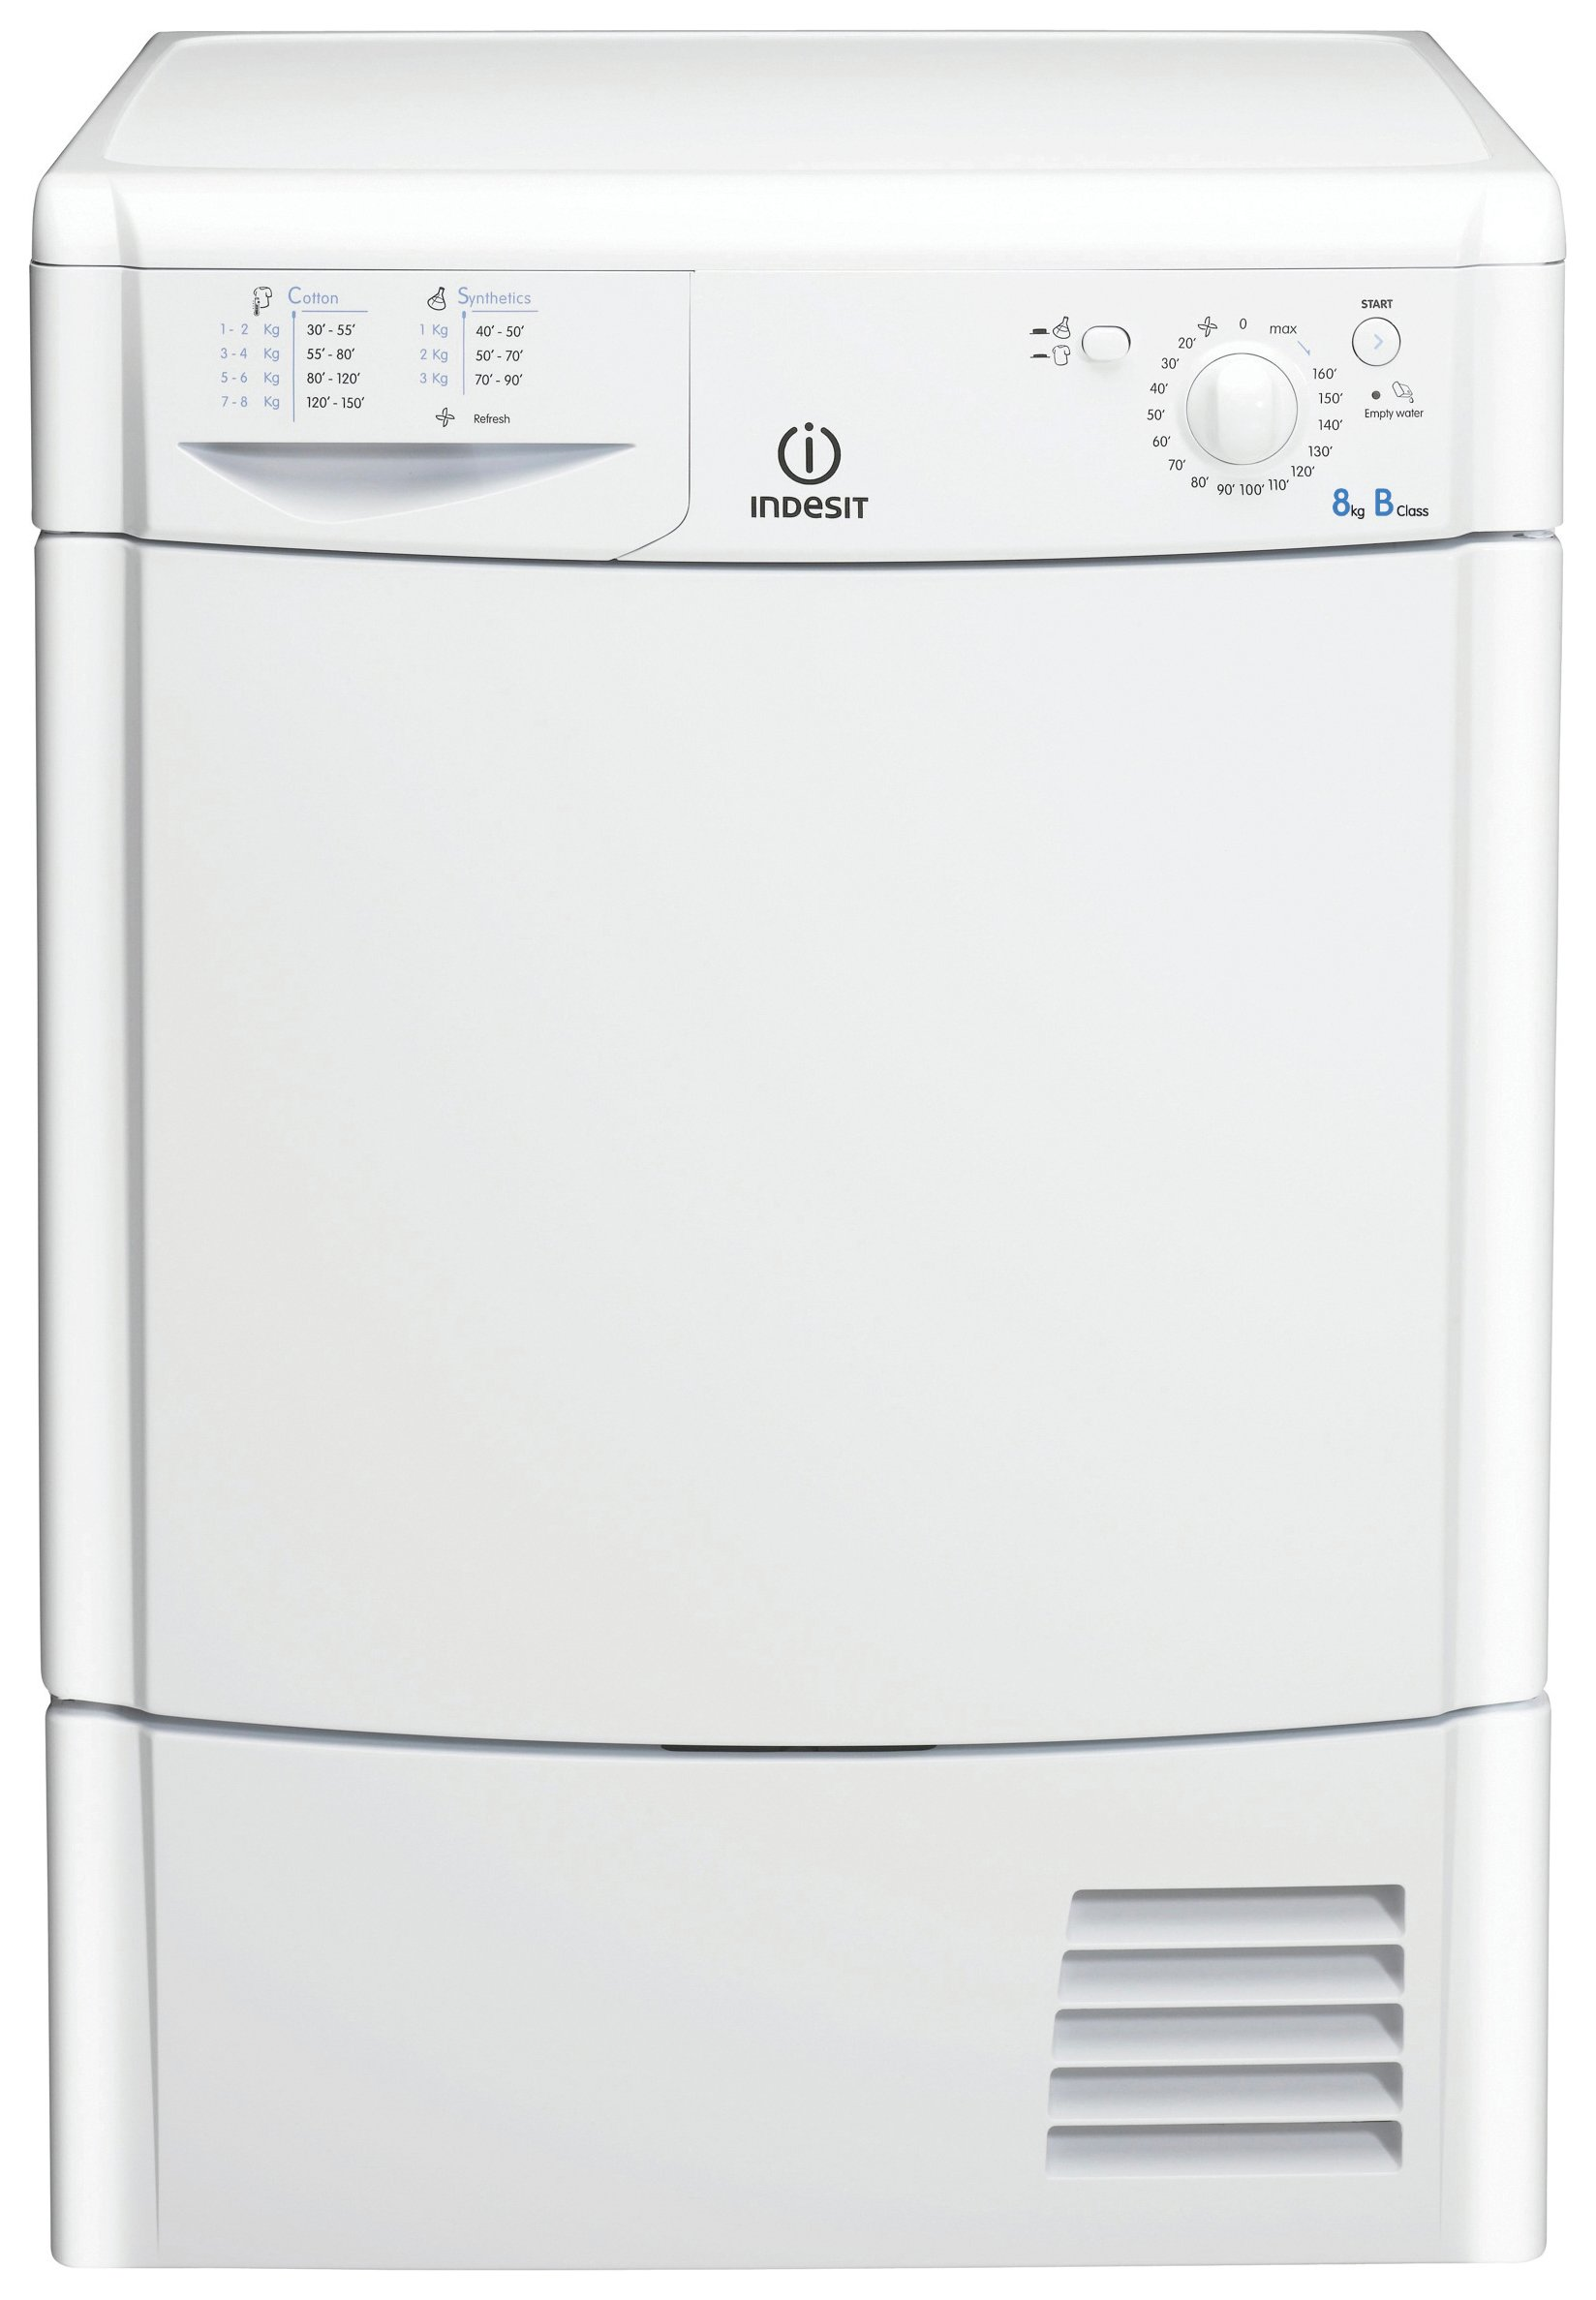 Indesit - IDC8T3B - Tumble Dryer - White